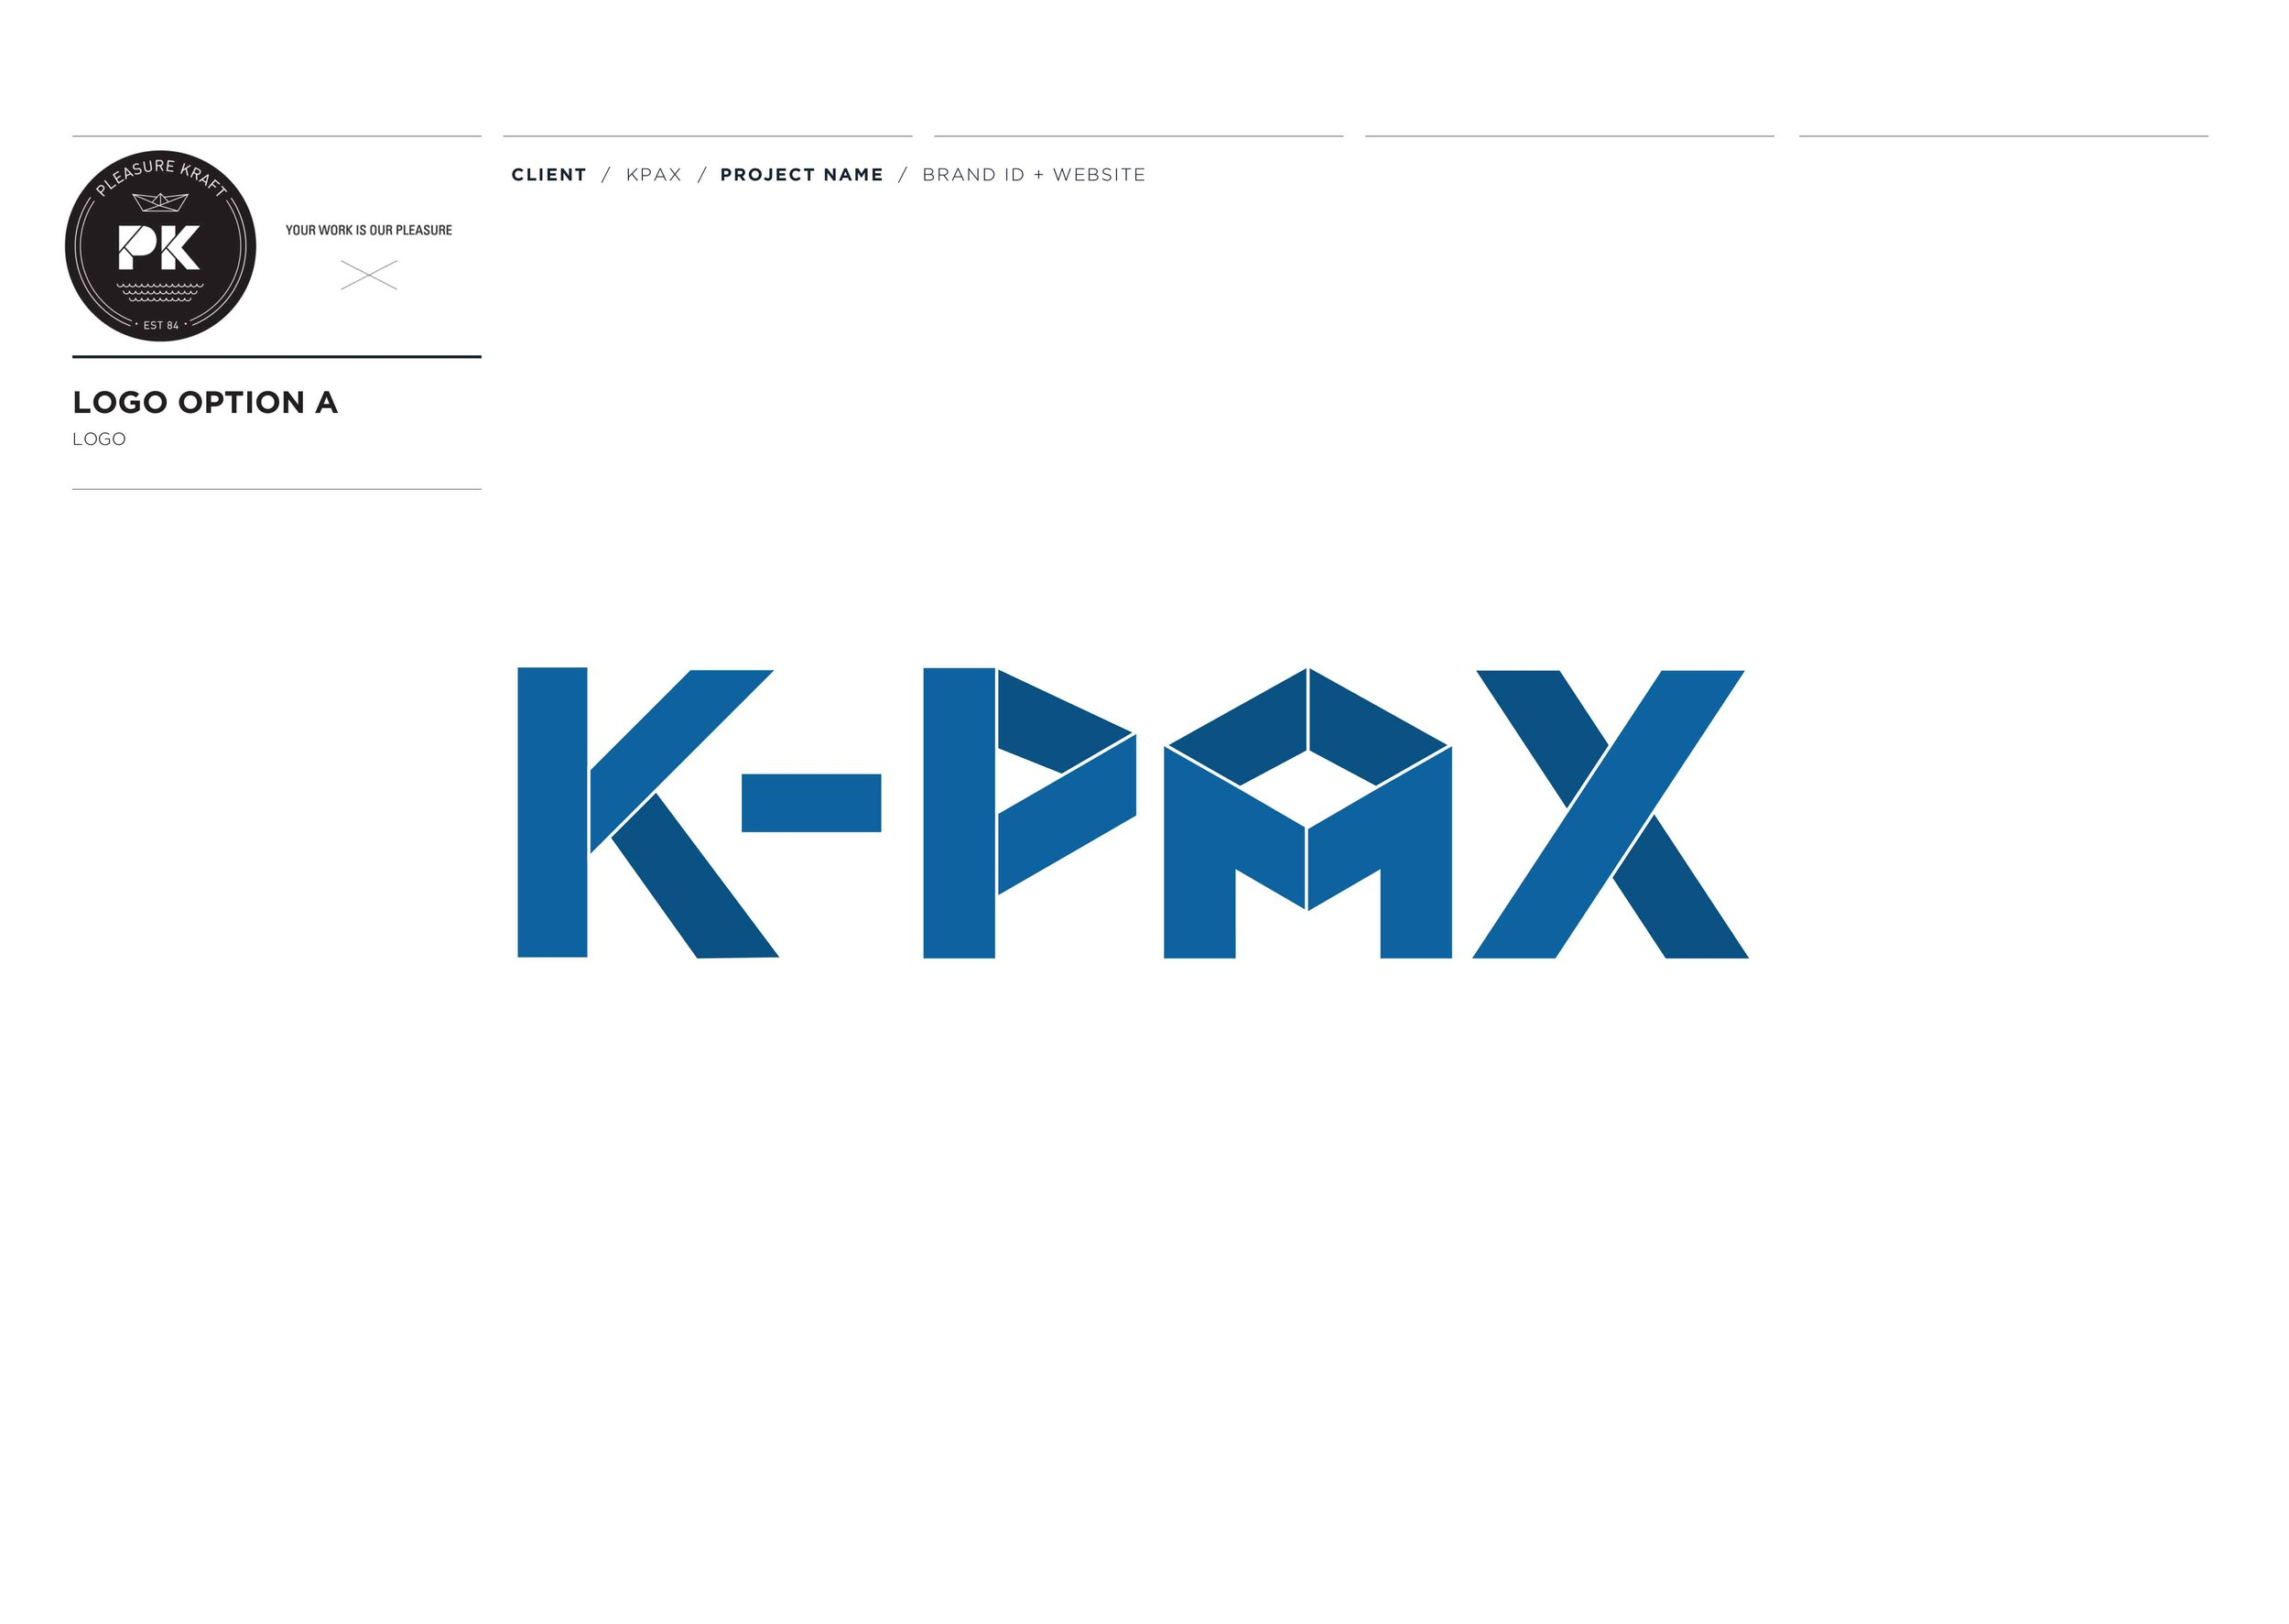 KPAX LOGO+GRAPHIC CONCEPTS PRES-2 copy.jpg